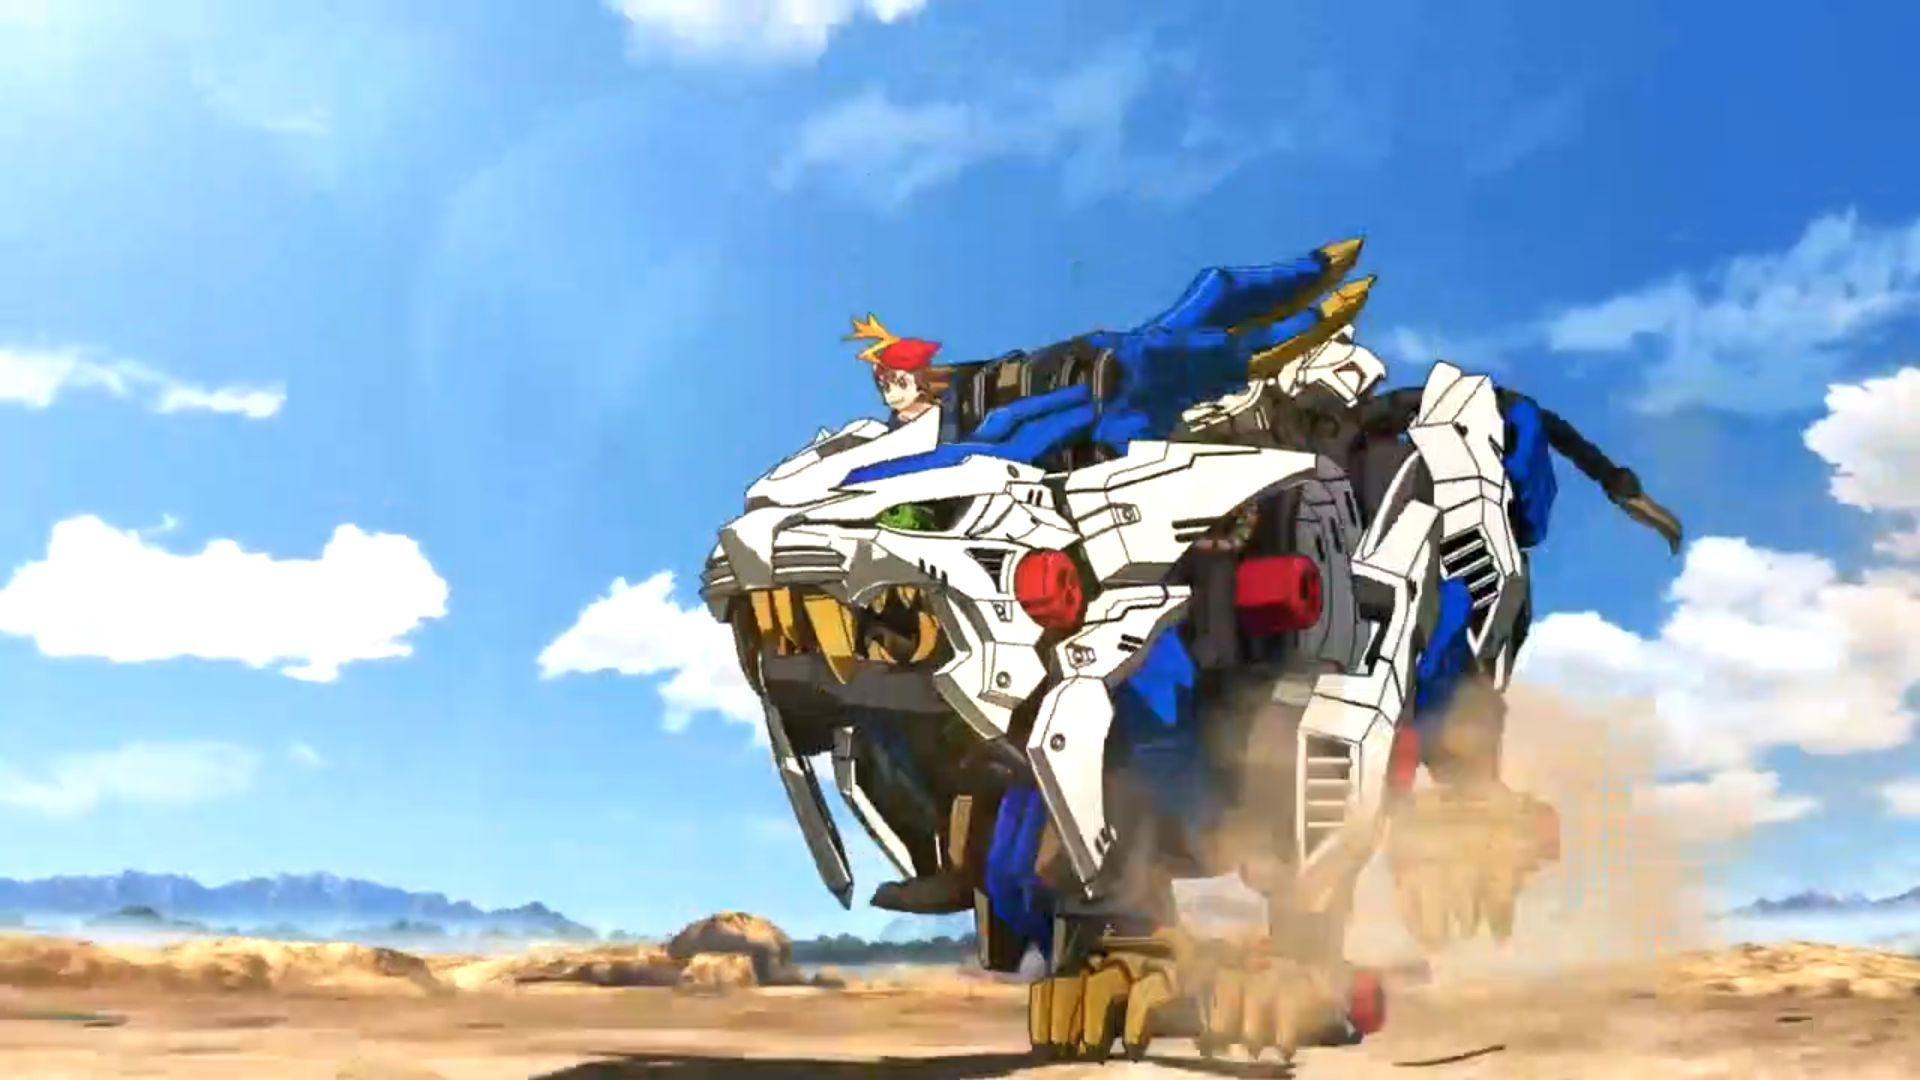 zoids is making a comeback geektyrant